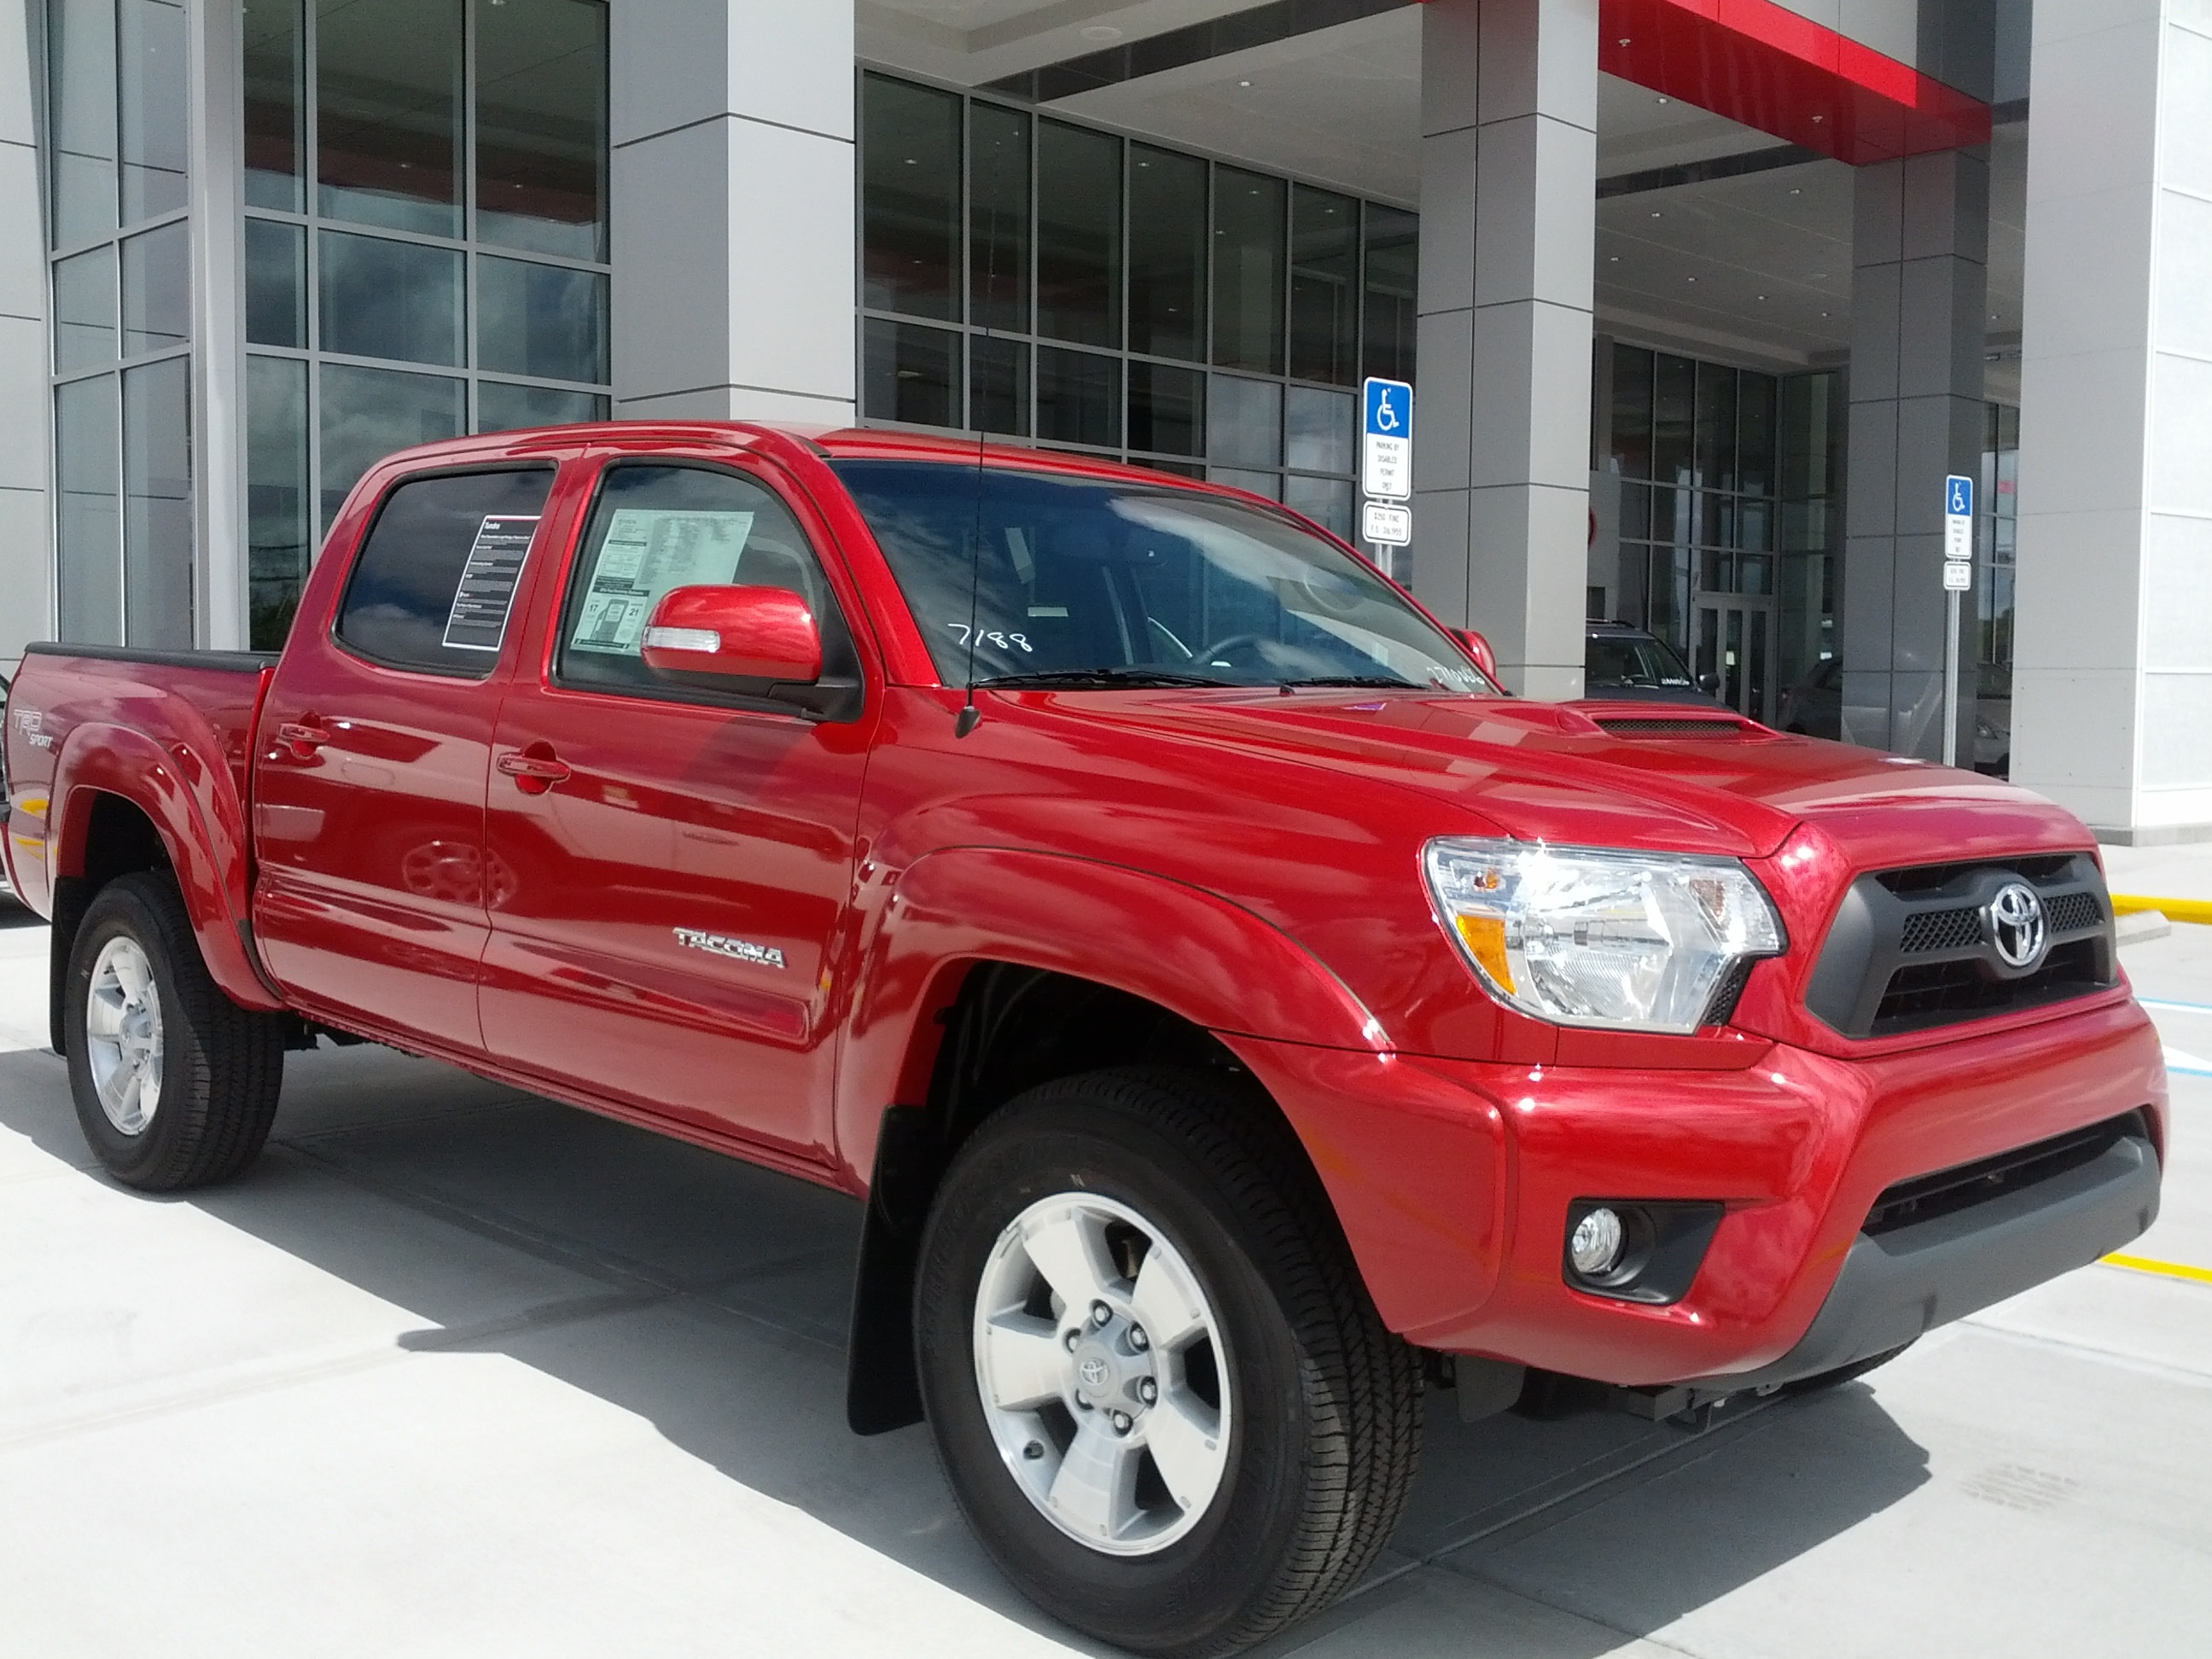 2012 Toyota Tacoma Central Florida